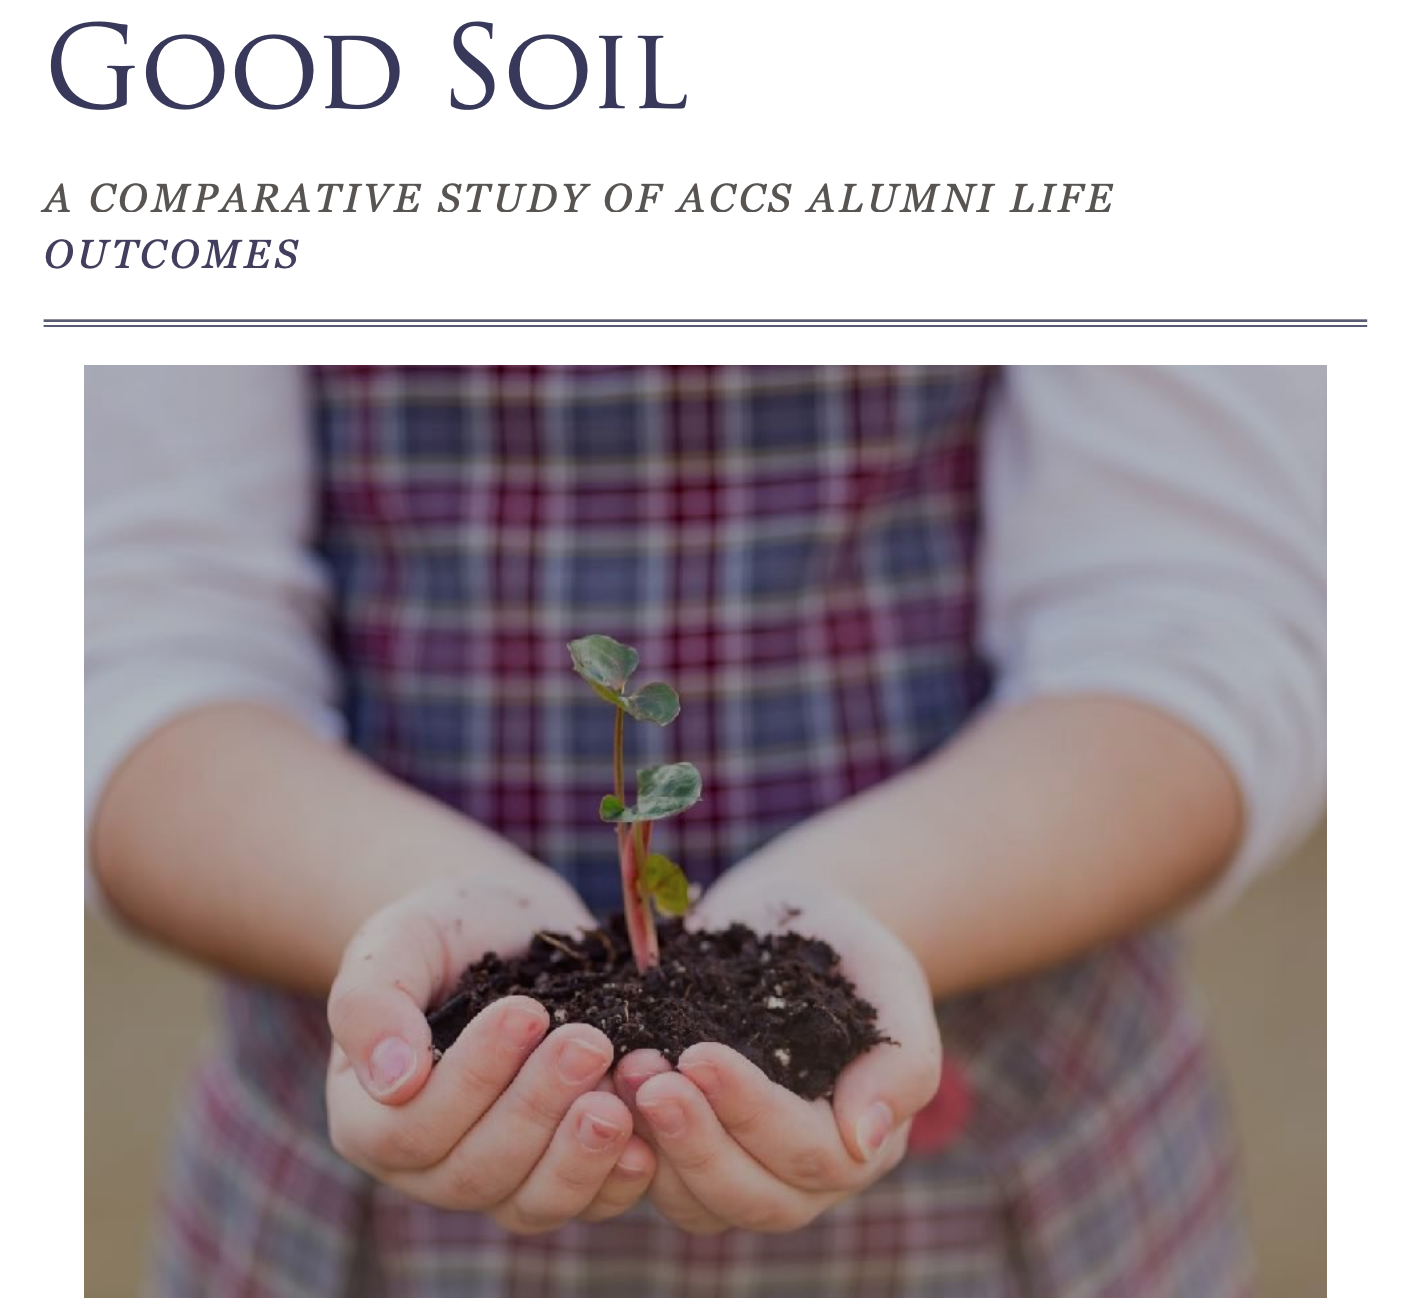 The Good Soil